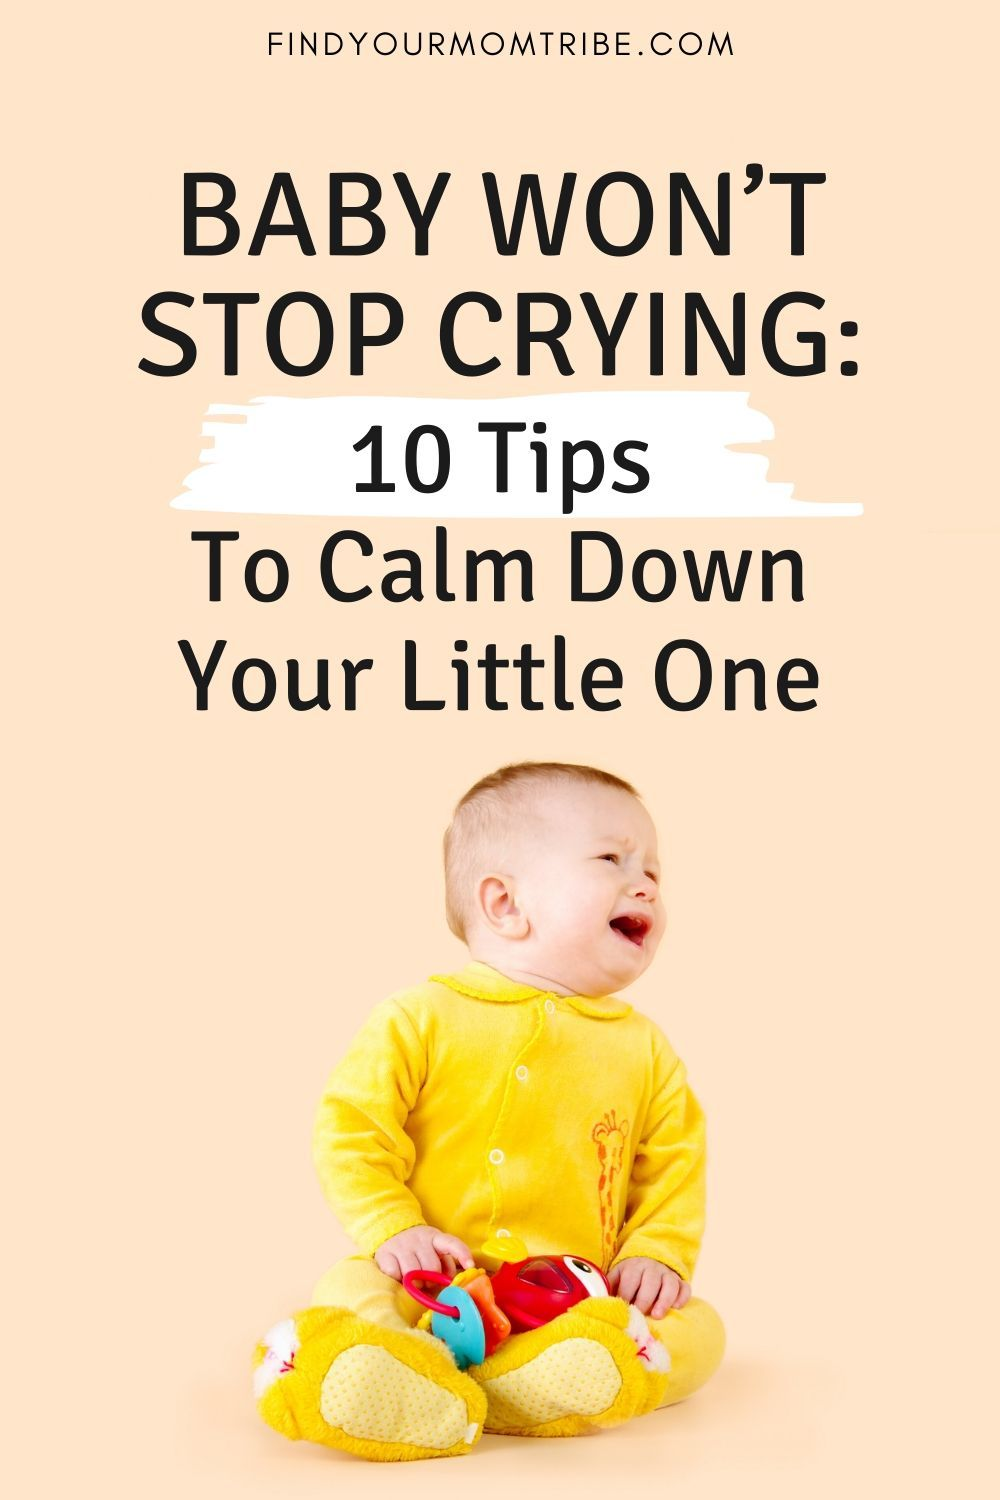 Baby wont stop crying 10 tips to calm down your little